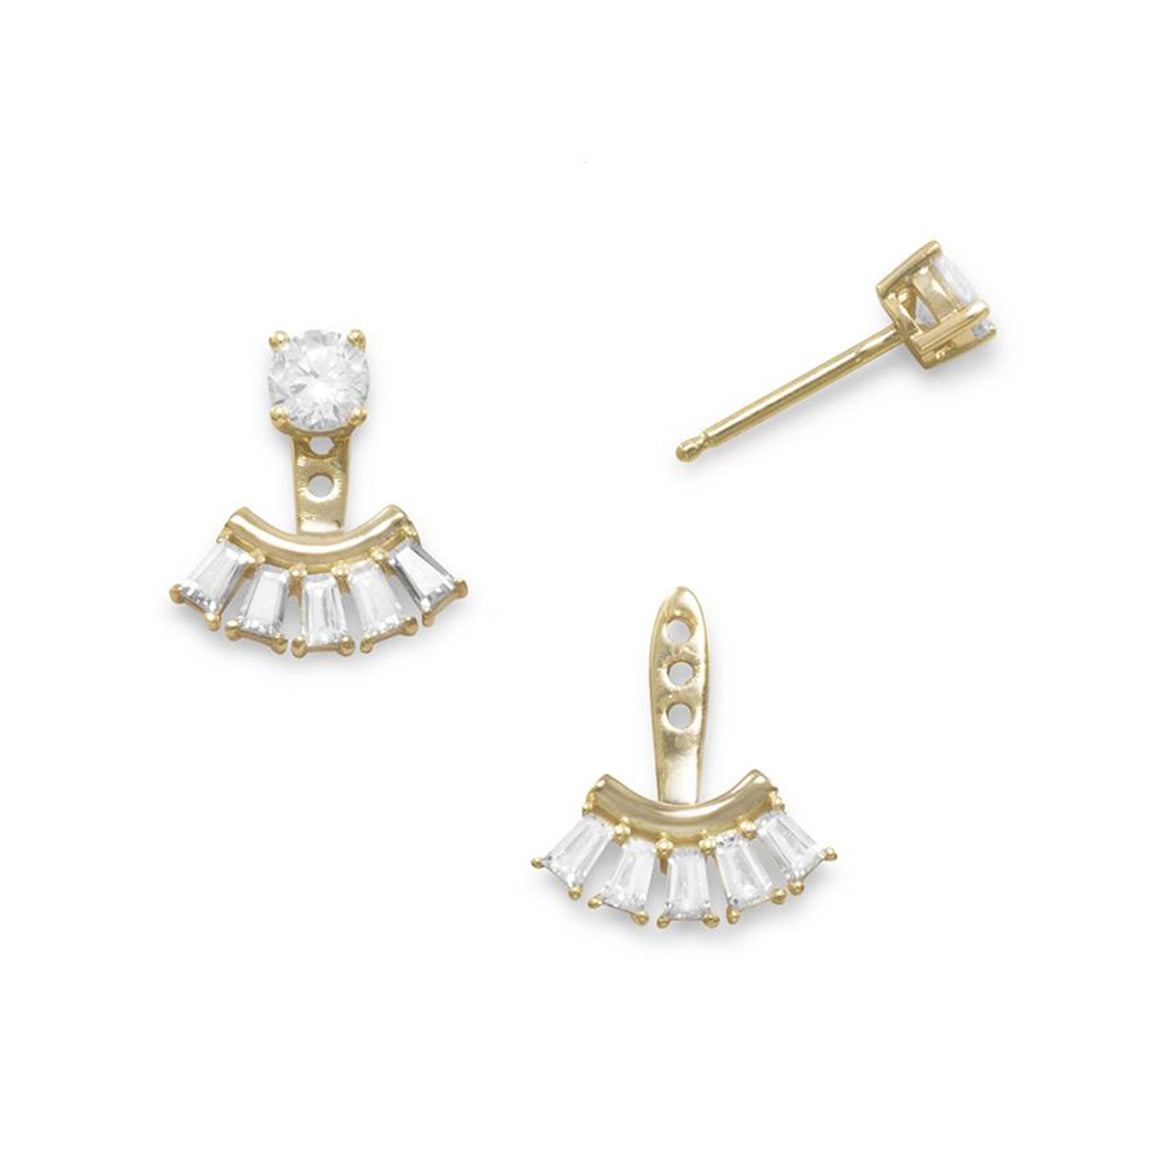 Paris Baguette Ear Jacket Earrings - Pretty Collected